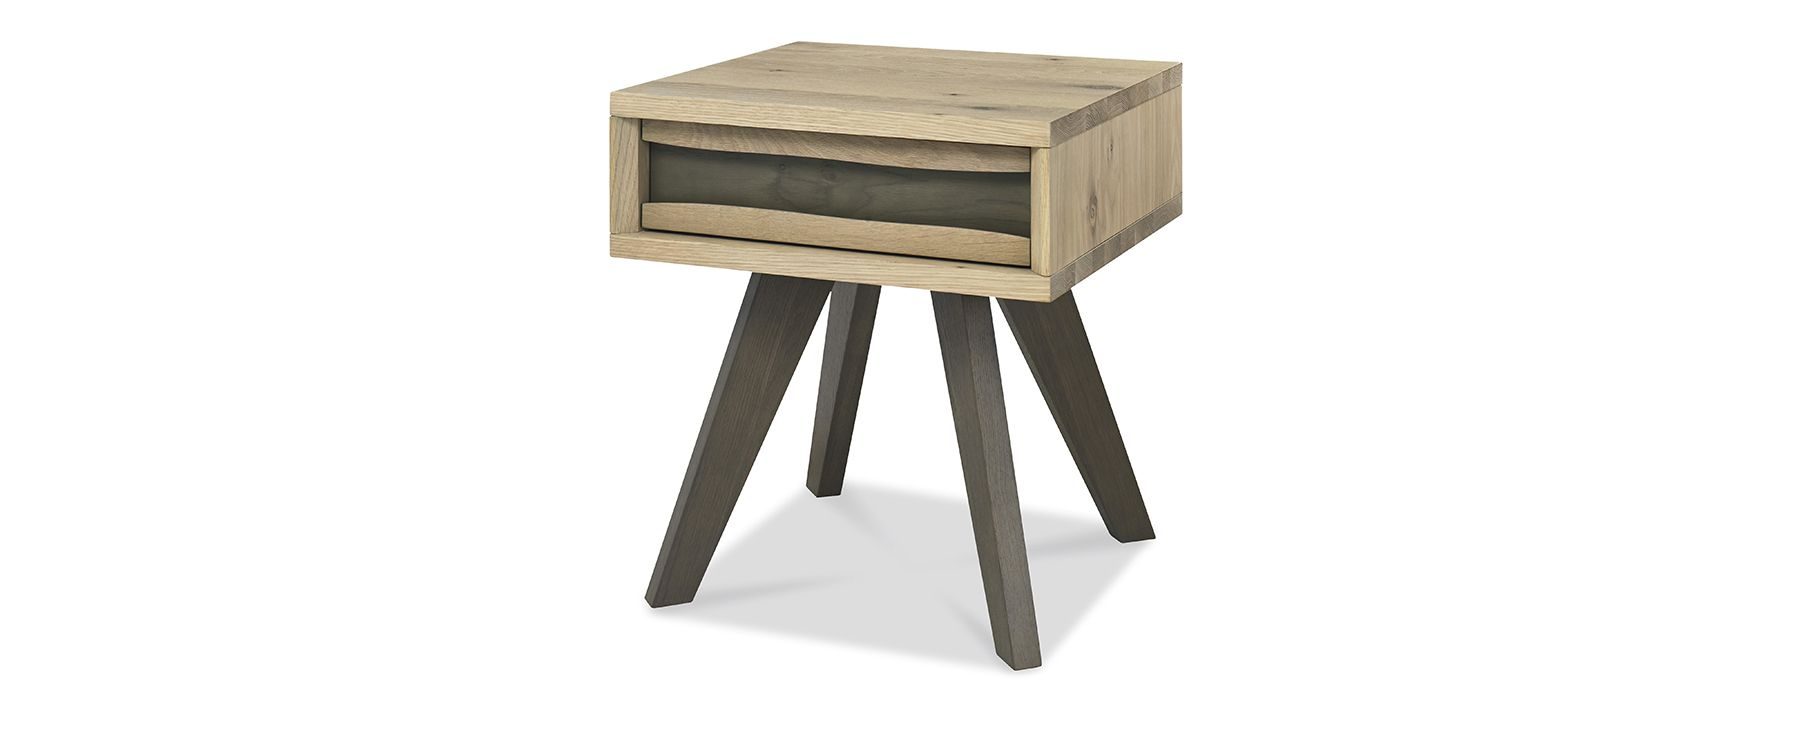 CARELL LAMP TABLE WITH DRAWER - L50cm x D46cm xH55cm - ANGLE DETAIL